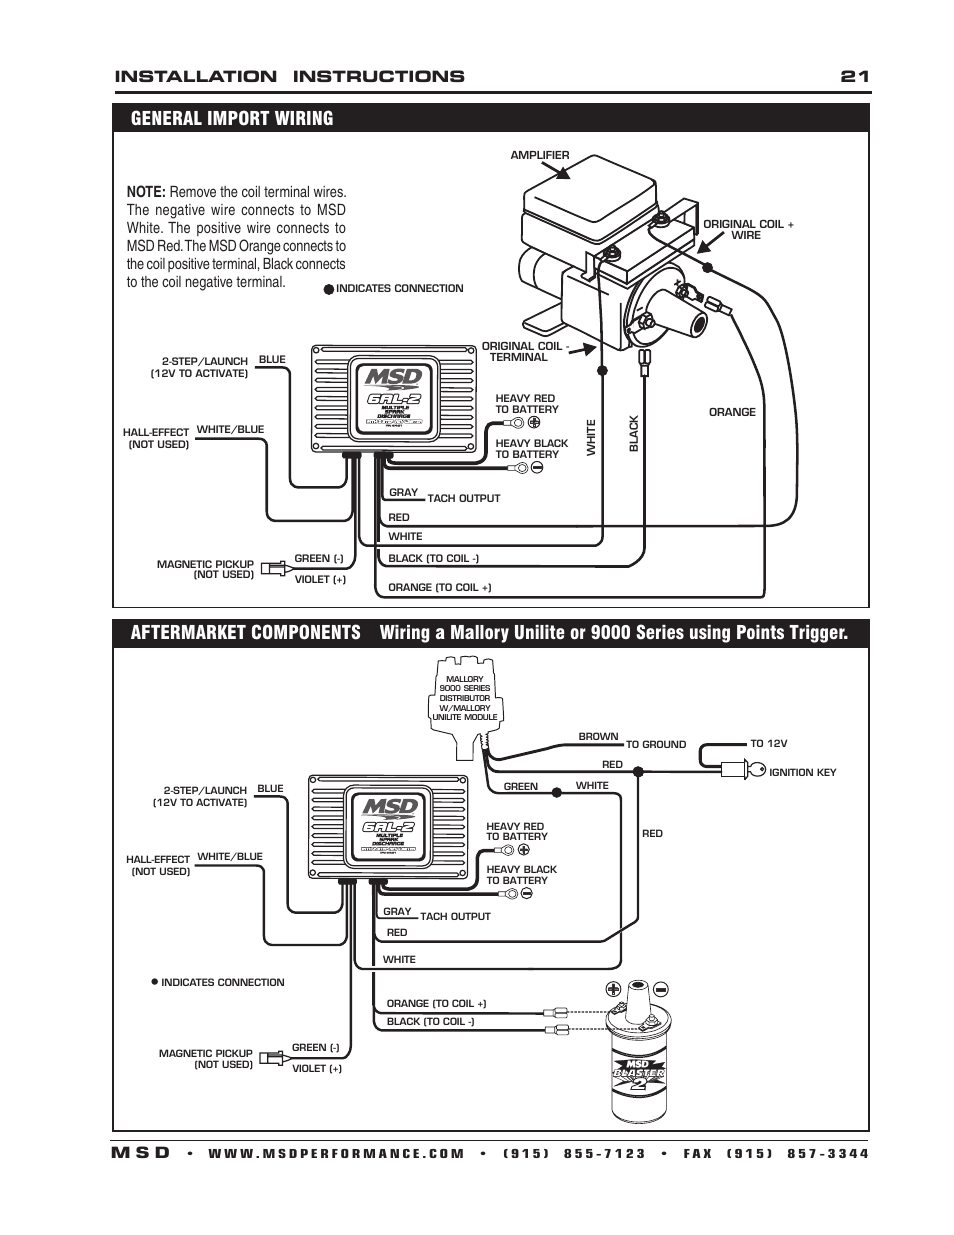 Famous Msd Ignition Wiring Diagram Gallery - The Best Electrical ...